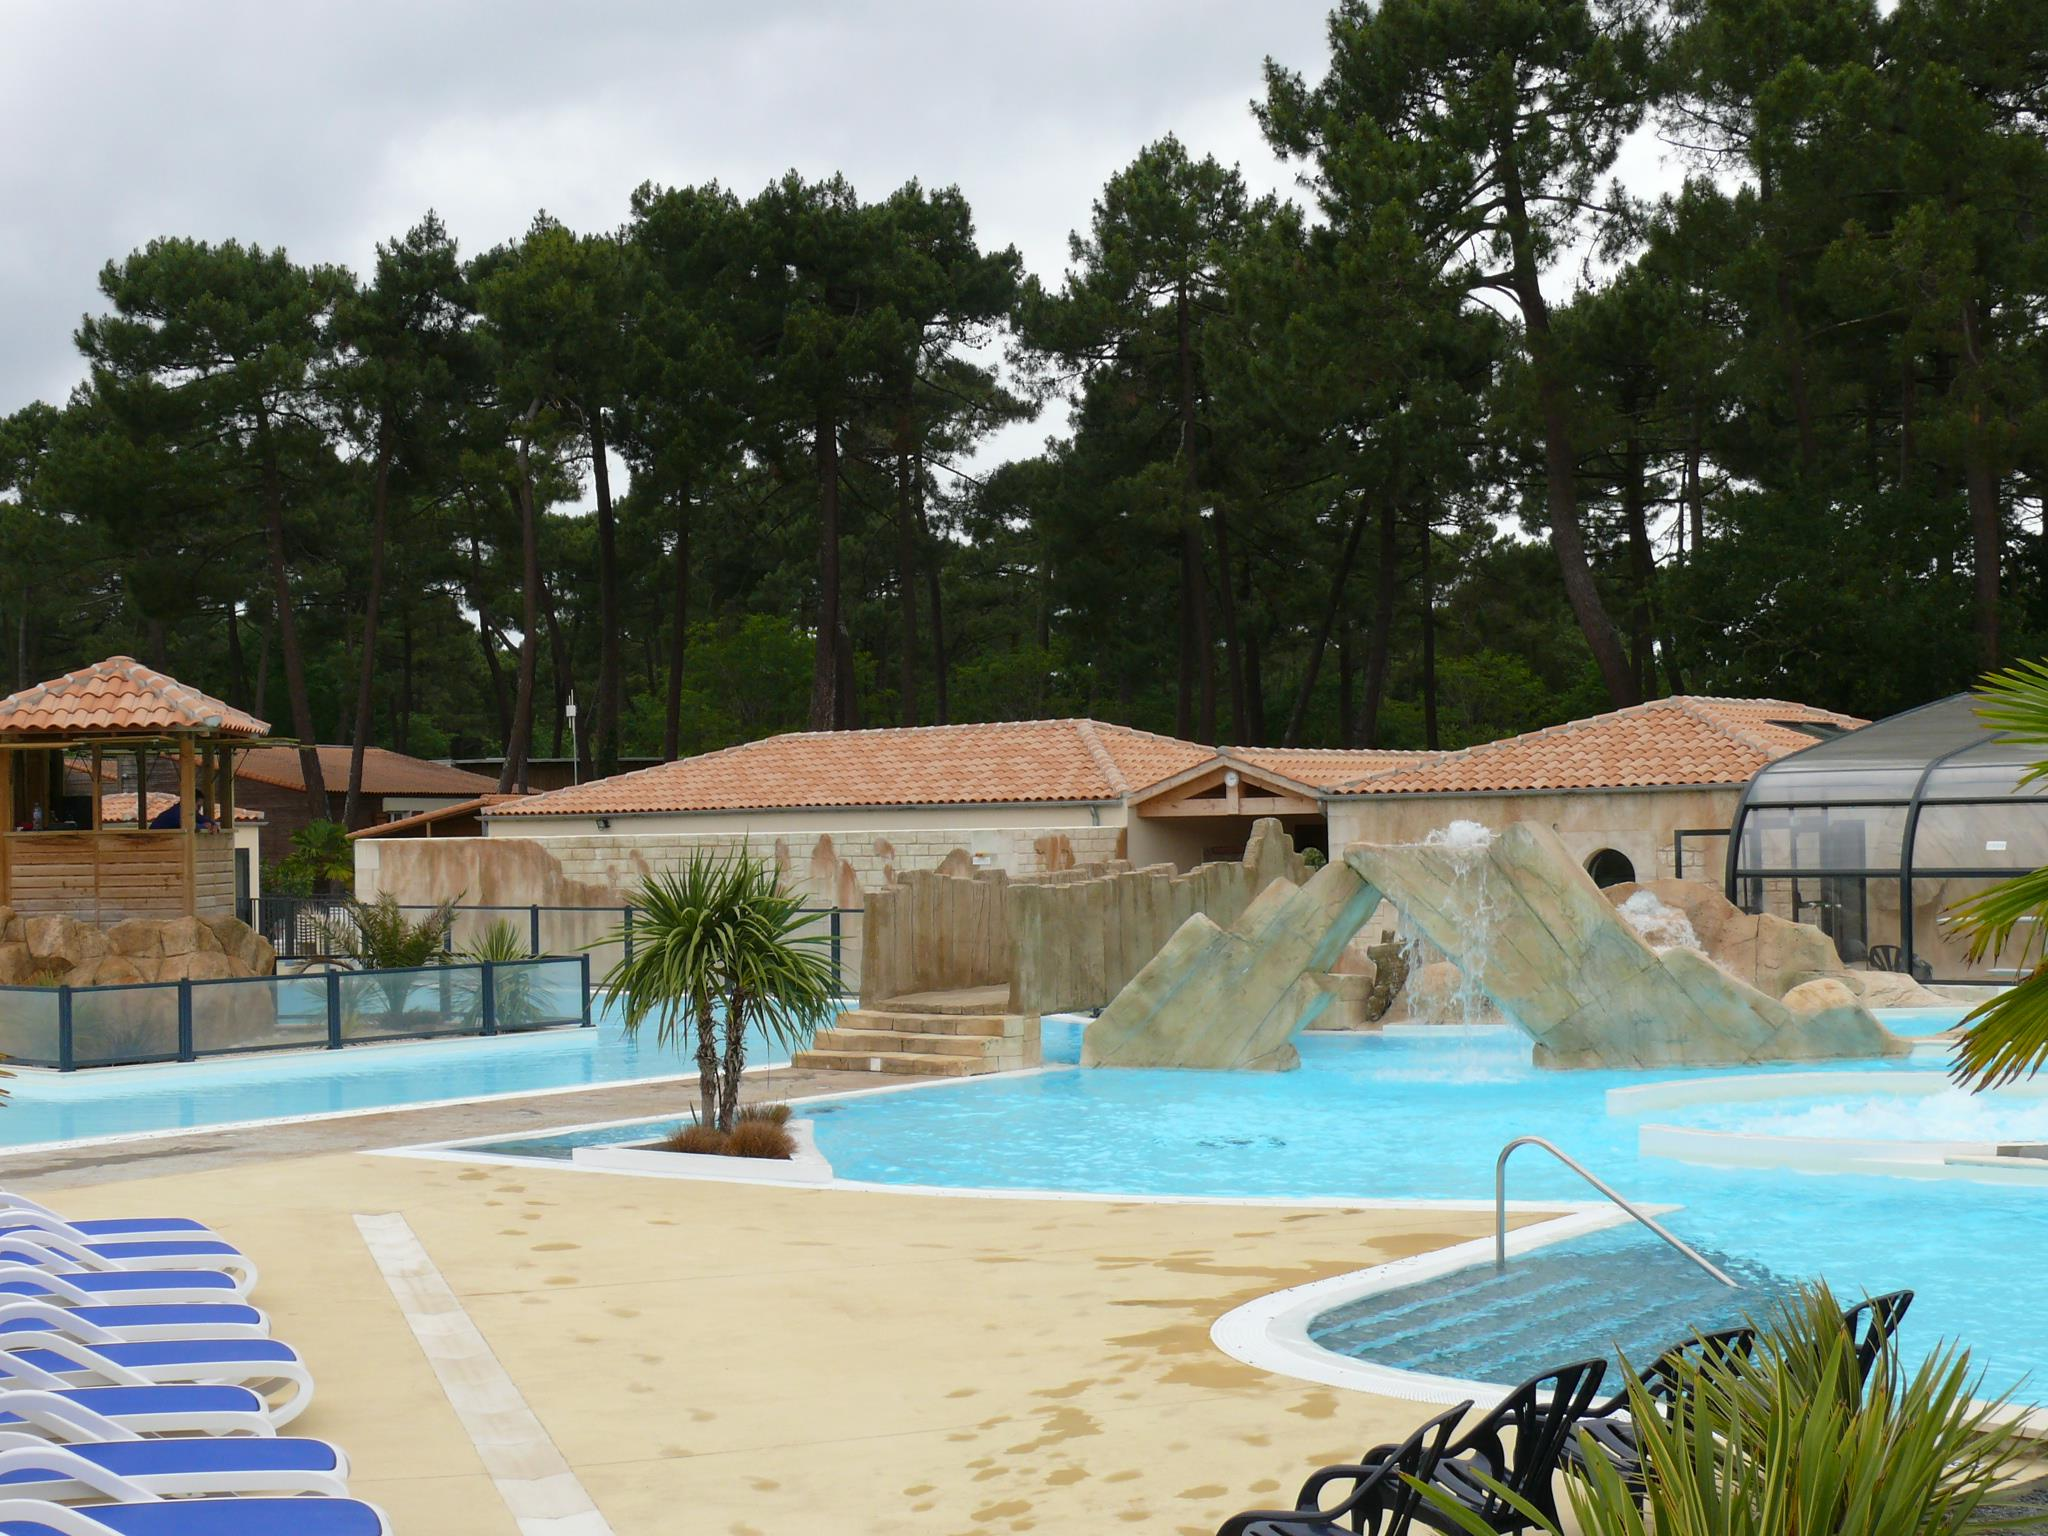 Camping Palmyre Loisirs, Les Mathes, Charente-Maritime